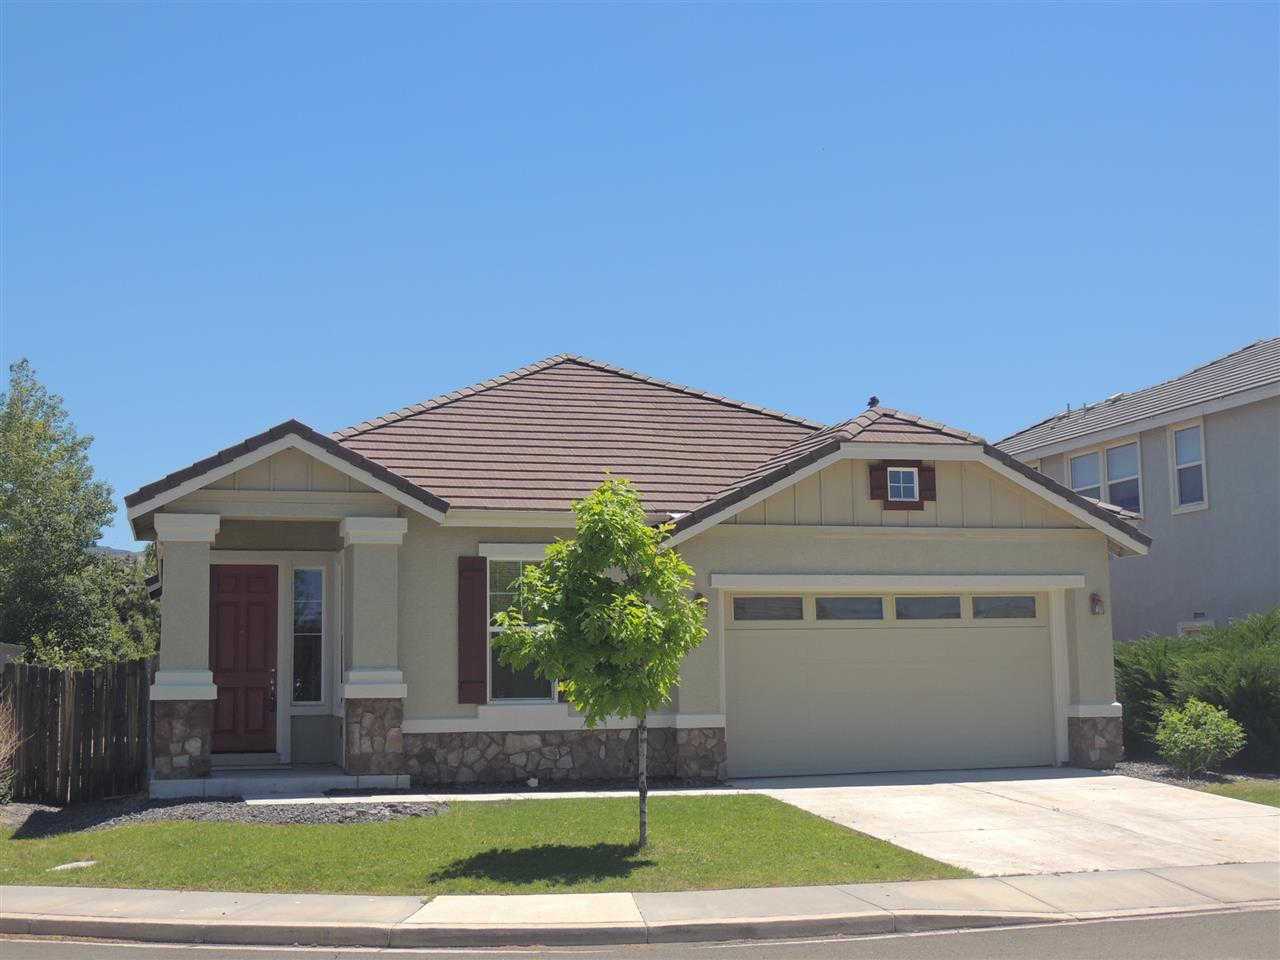 7426 Minkler Court, Sparks, NV 89436-5417 now has a new price of $395,000!